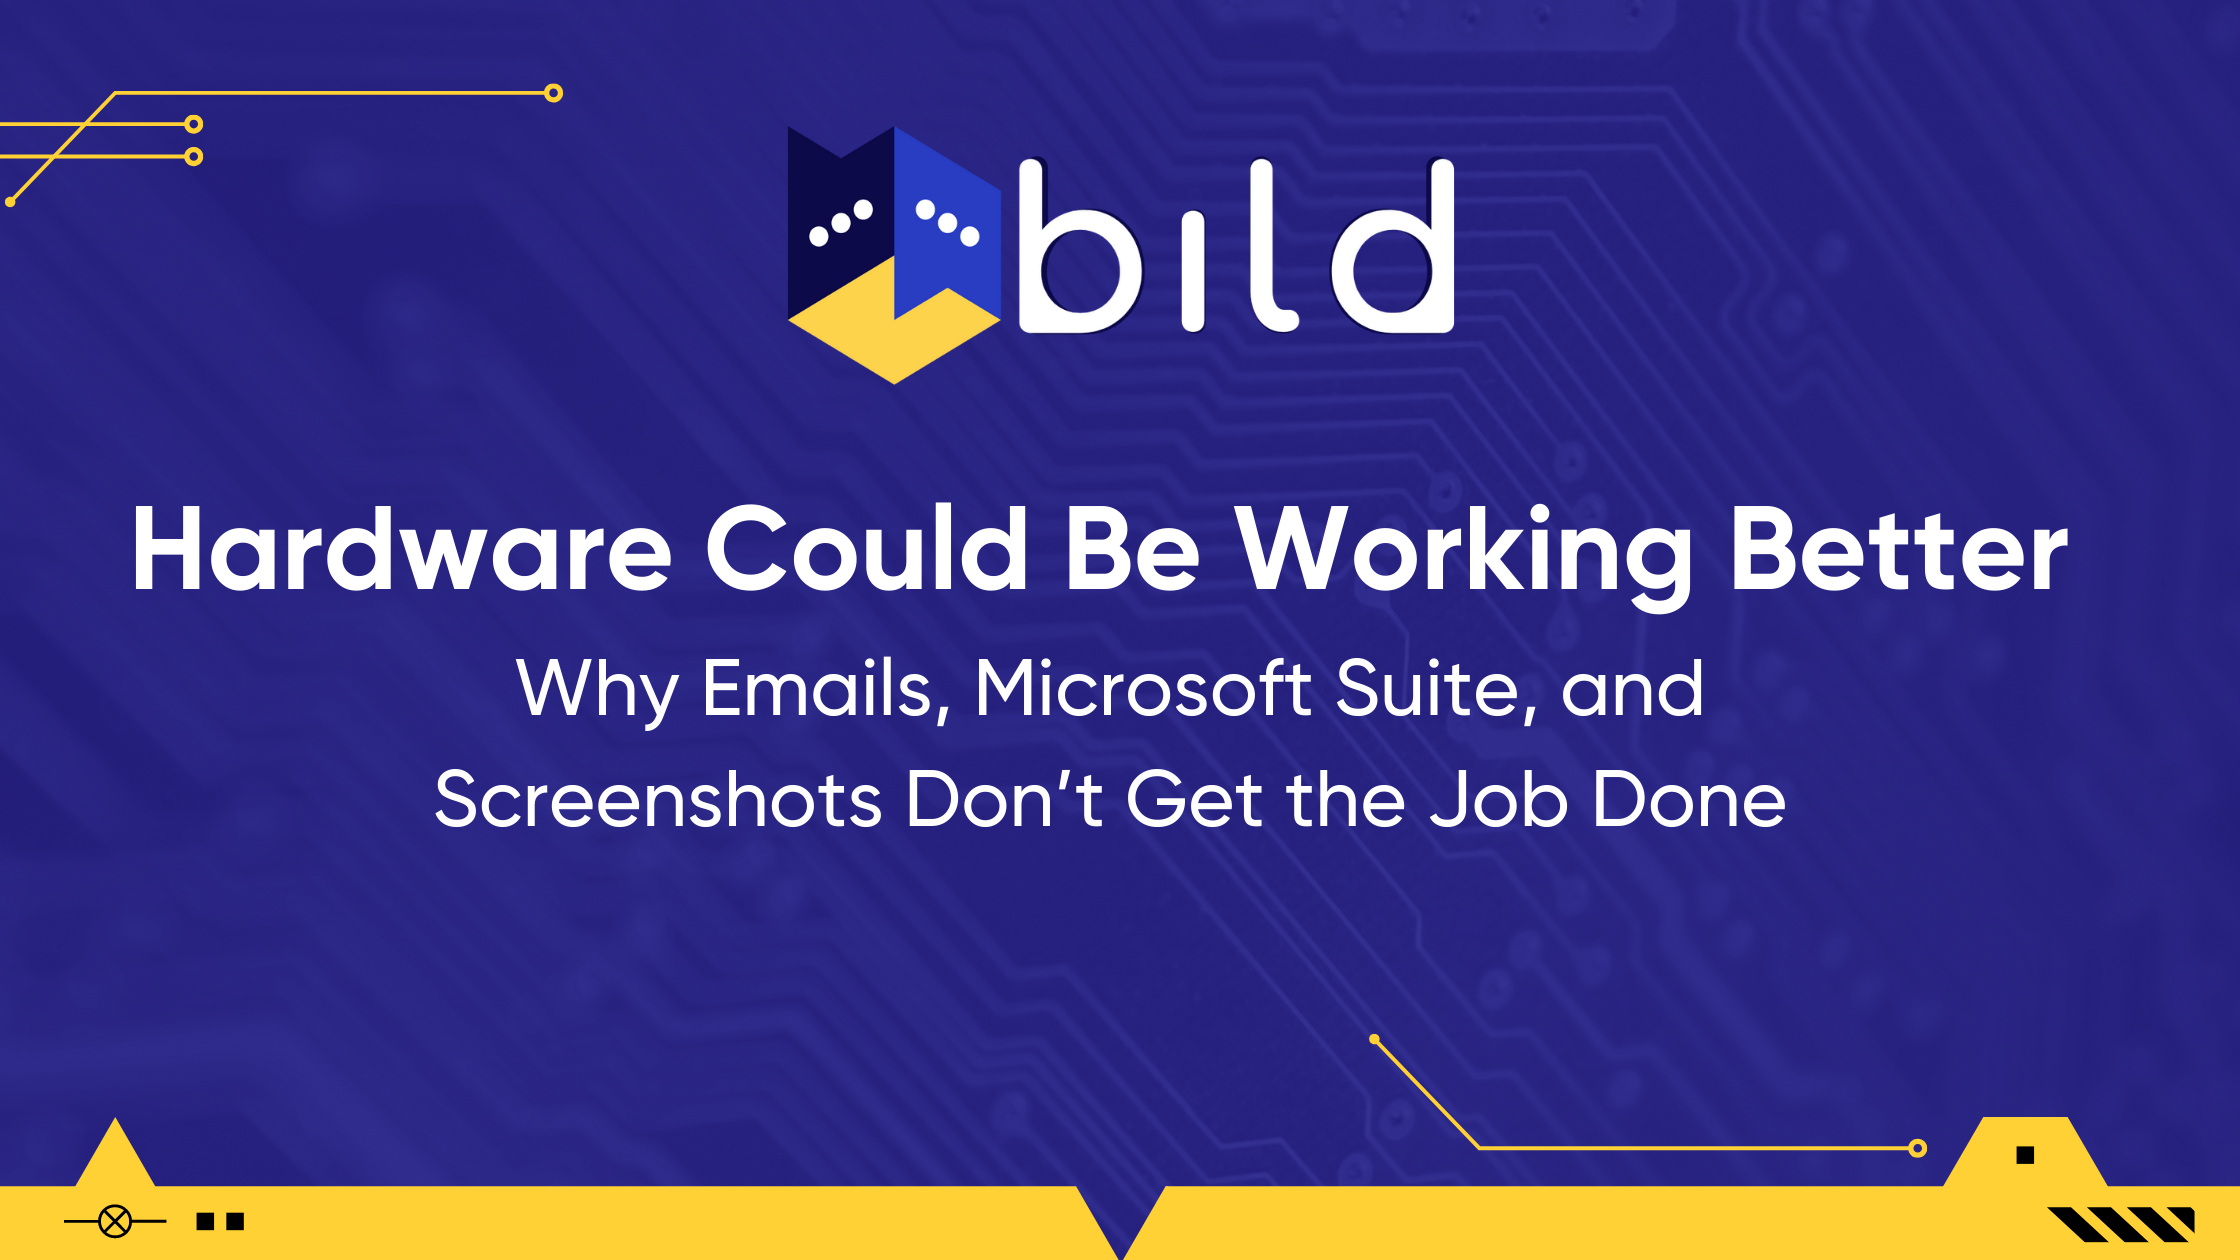 Learn why emails, Microsoft suite, and screenshots don't get the job done in hardware